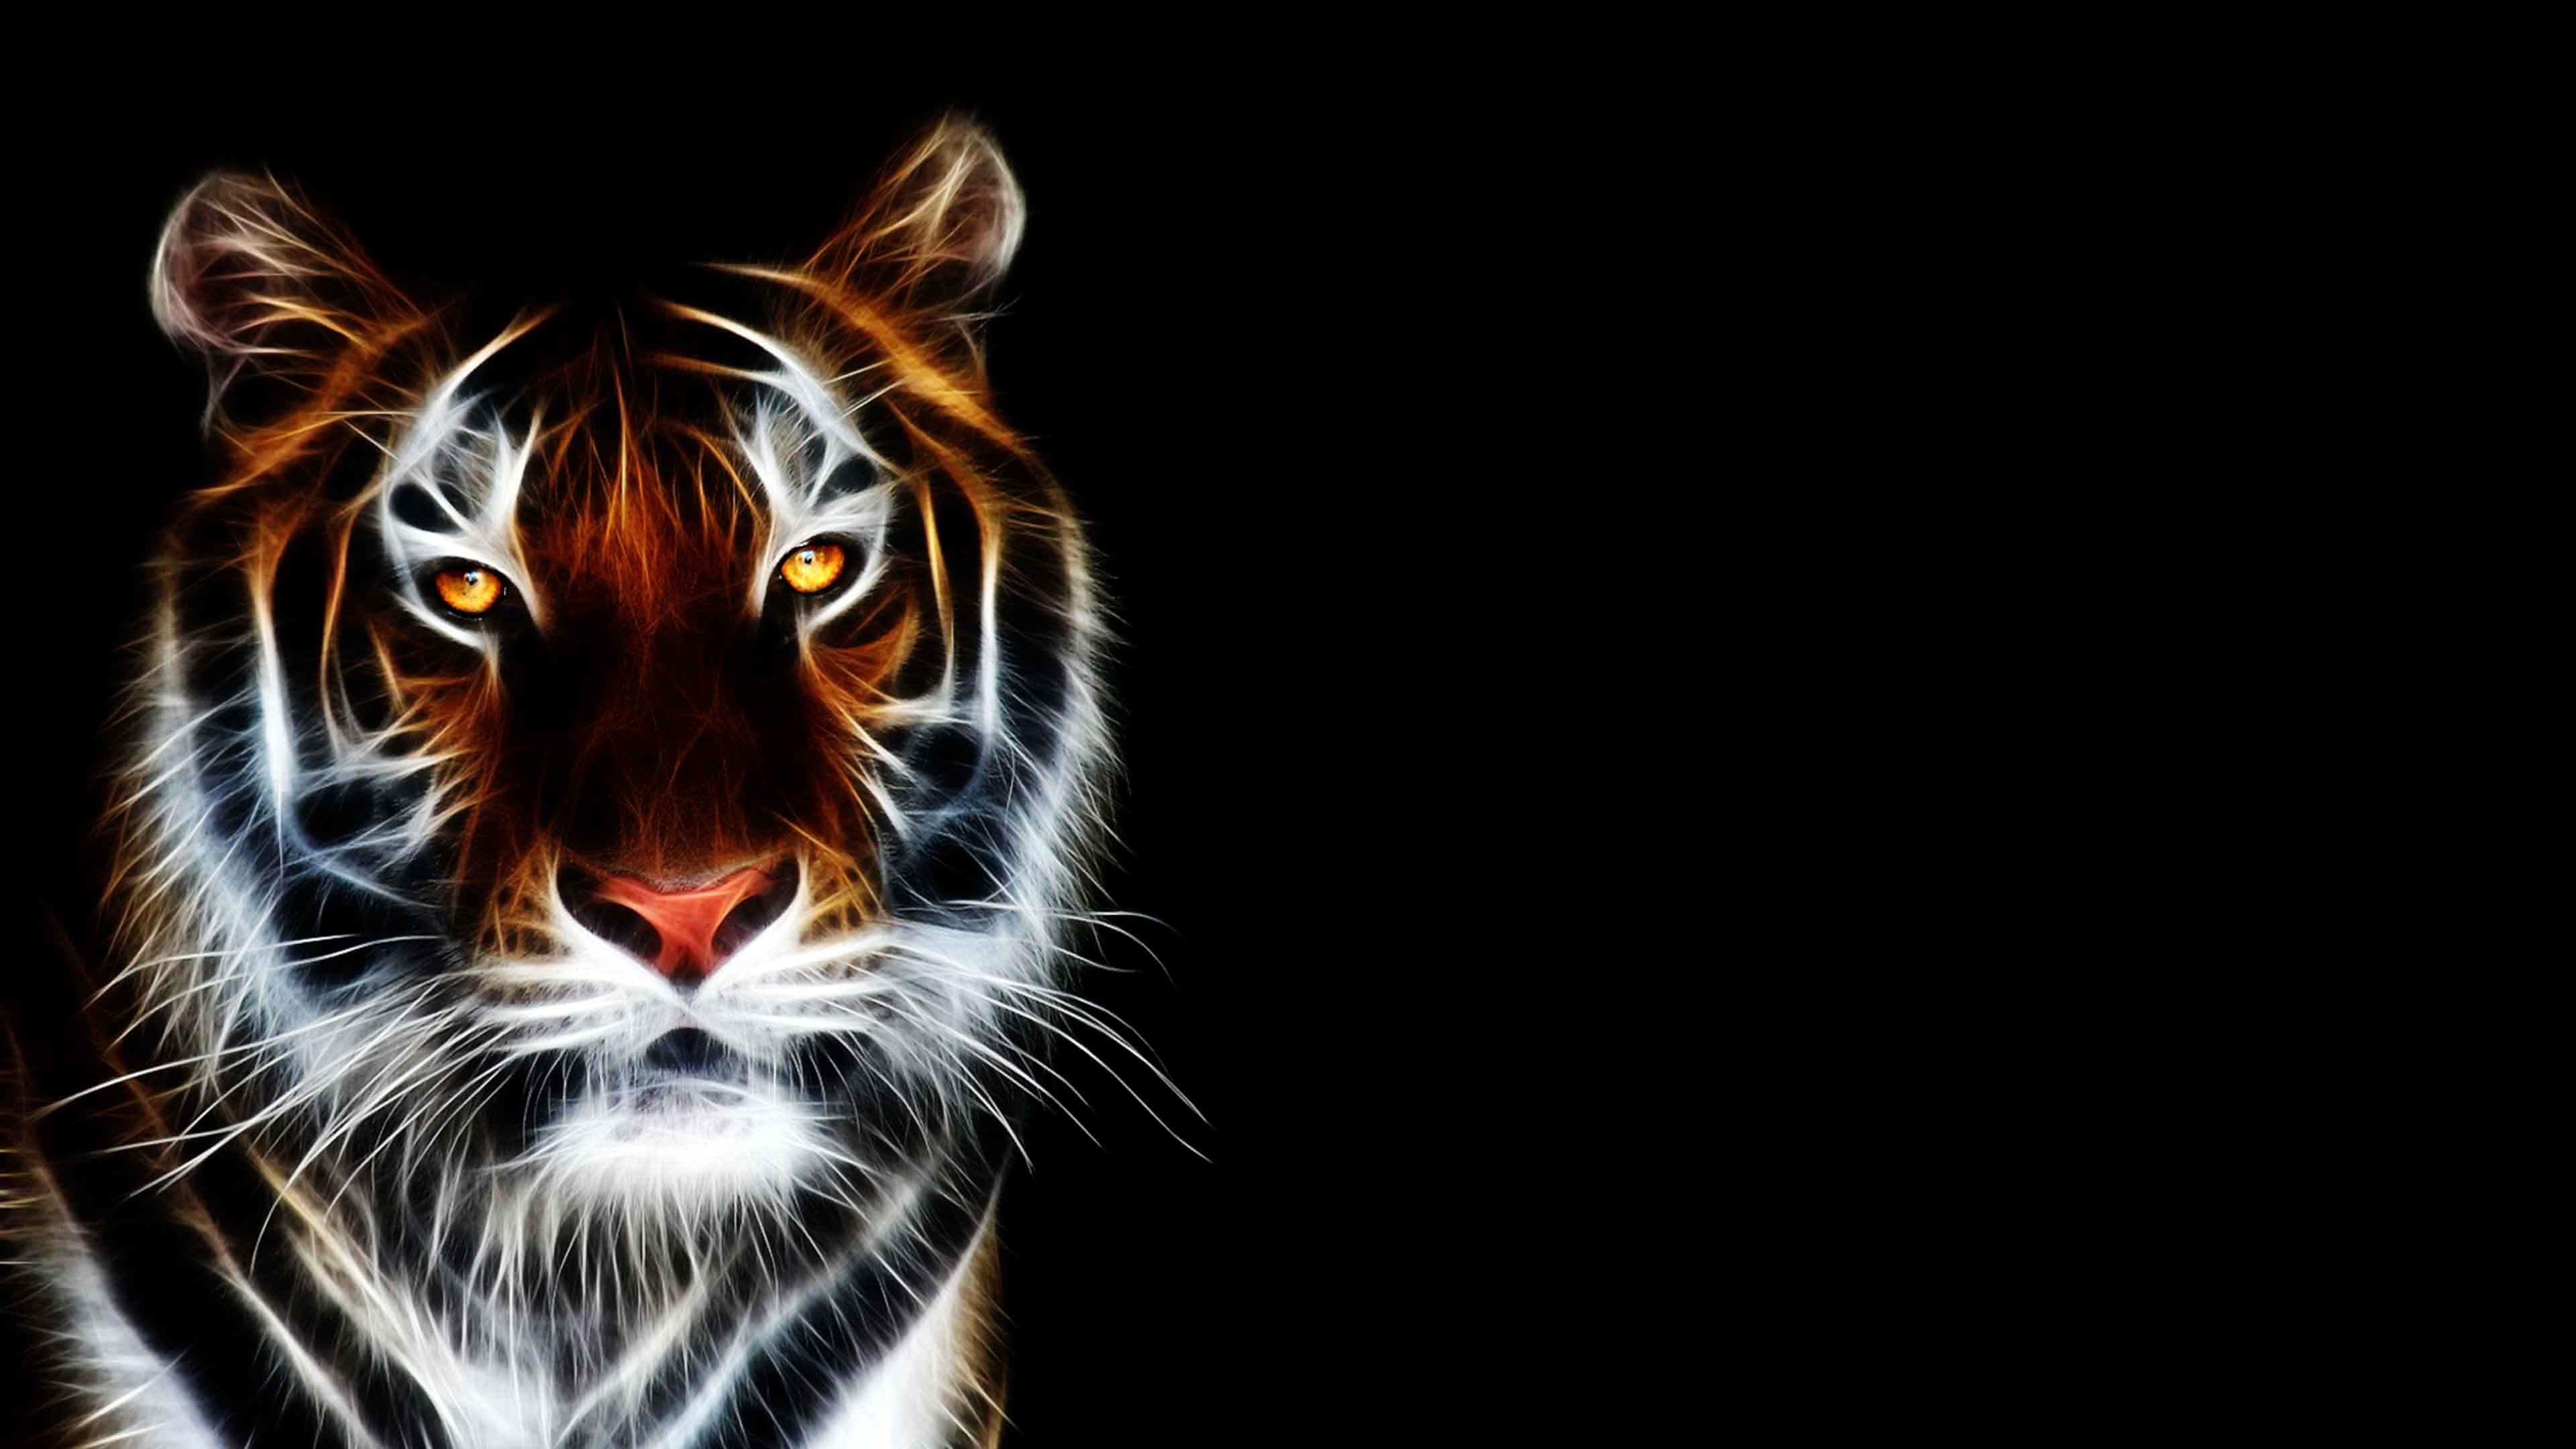 3840x2160 ... 3d Animated Tiger Wallpapers | 3d wallpaper HD